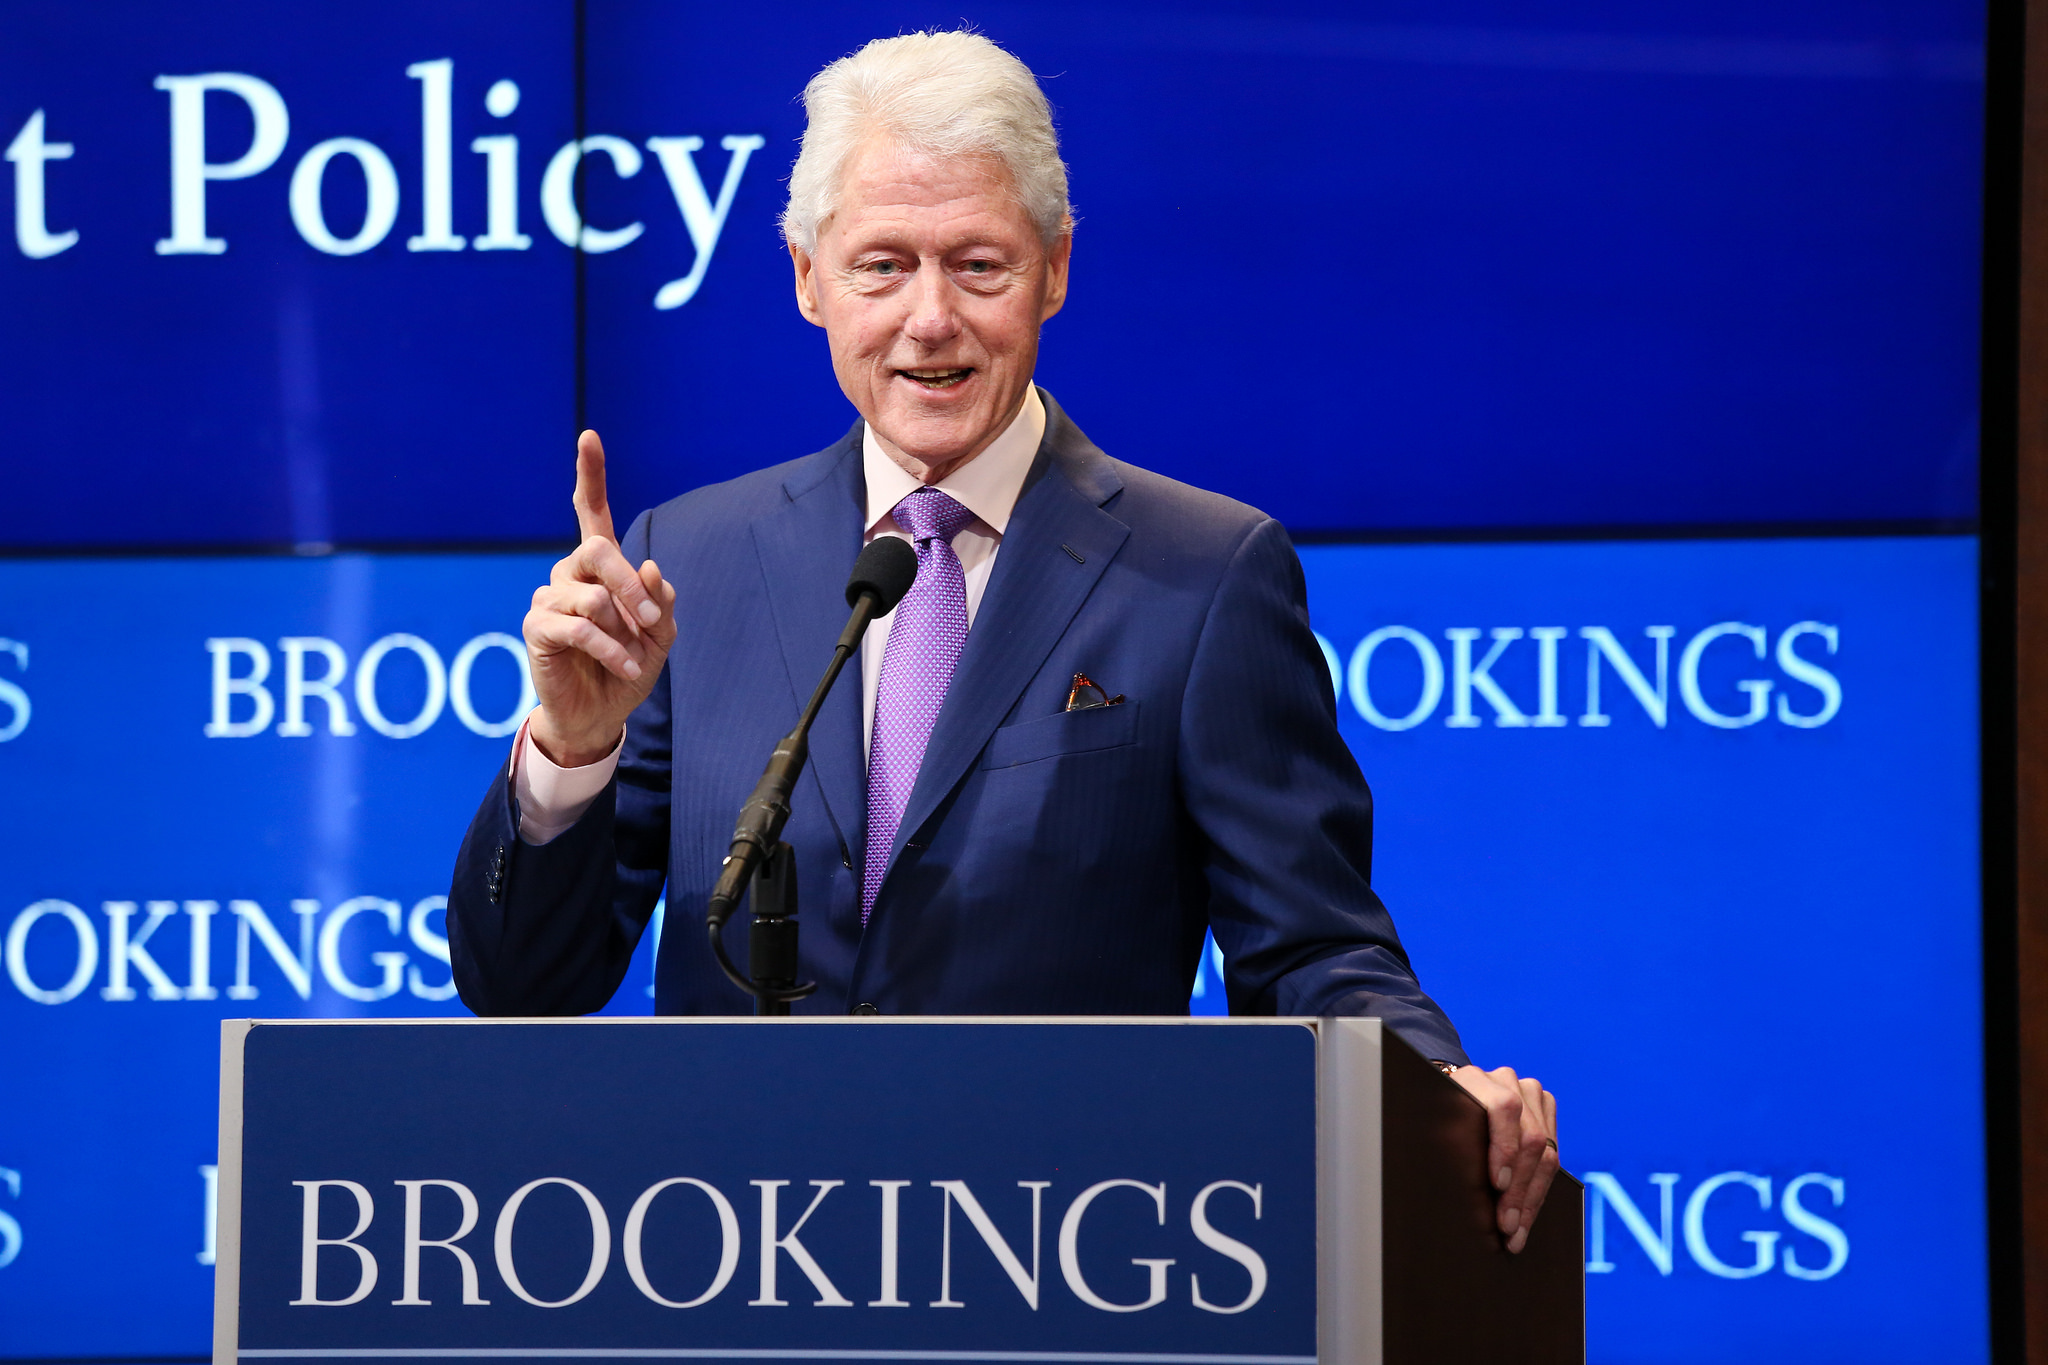 """The latest revelations have prompted a hard look back at the way Democrats and their allies once circled the wagons around President Bill Clinton, dismissing allegations that extended to serious assault as mere dalliances or the tales of """"looney"""" women. (Photo: Brookings Institution/Flickr, C BY-NC-ND 2.0)"""